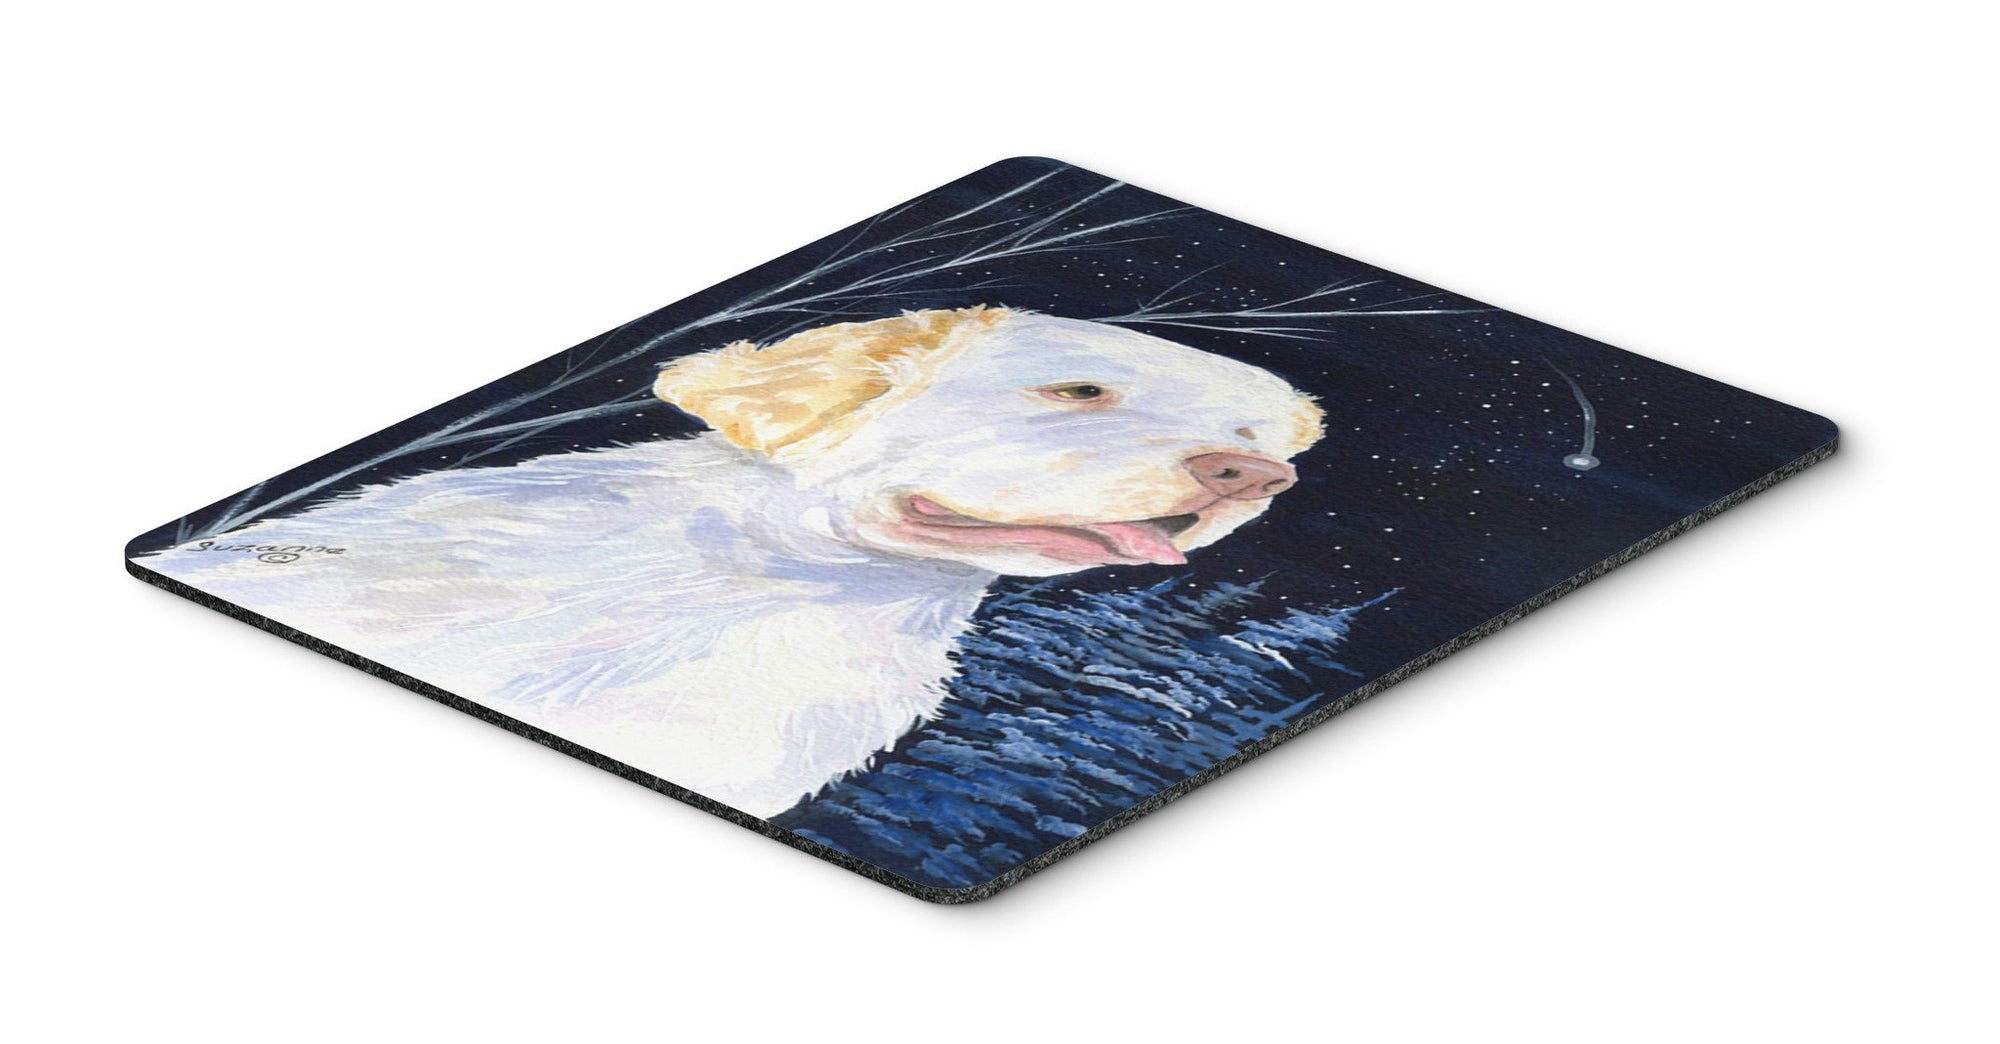 Starry Night Clumber Spaniel Mouse Pad / Hot Pad / Trivet by Caroline's Treasures